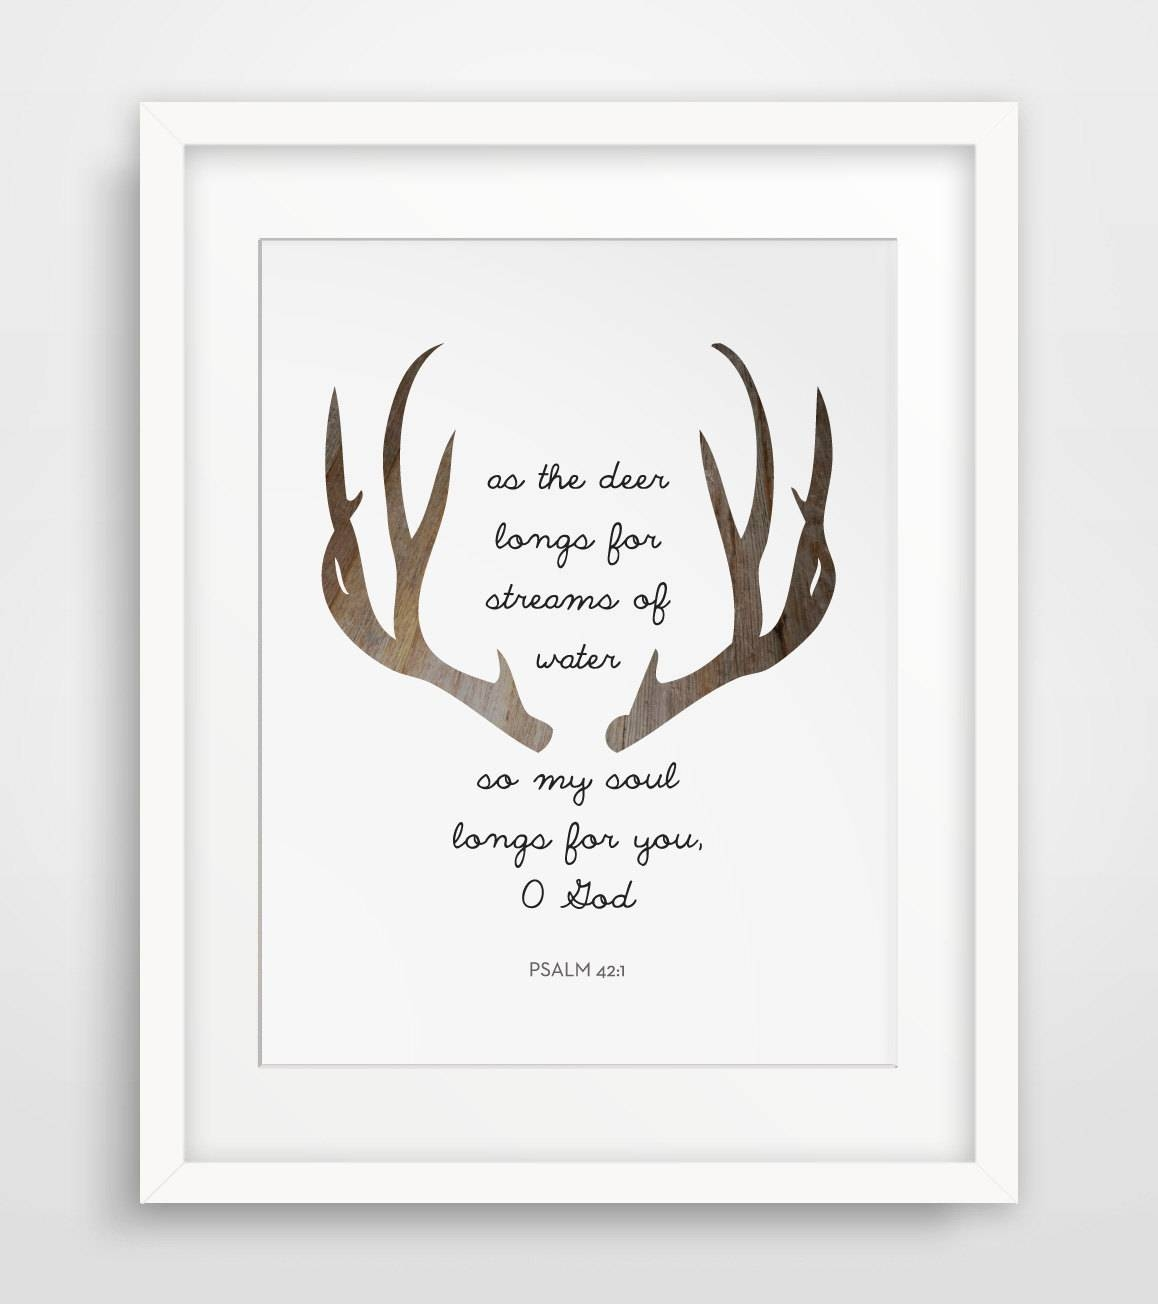 Wall Art Design Ideas: Deer Horn Christian Wall Art Canvas For Most Up To Date Bible Verses Framed Art (View 5 of 25)